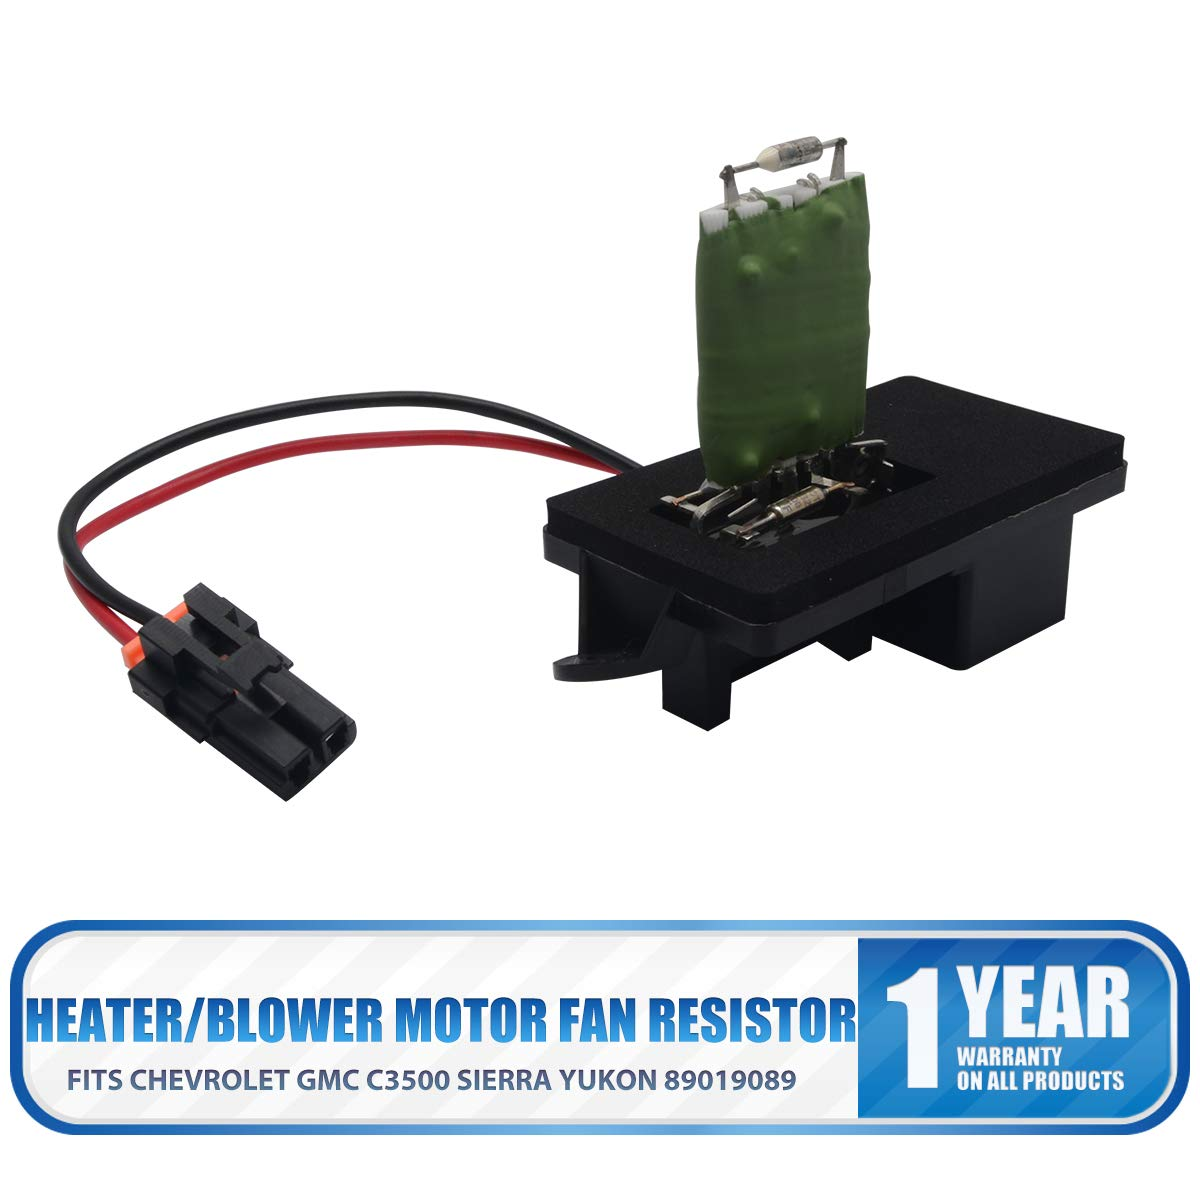 HugeAuto Heater/Blower Motor Fan Resistor Fits Re nault/Re nault Clio MK3 Modus 7701209103